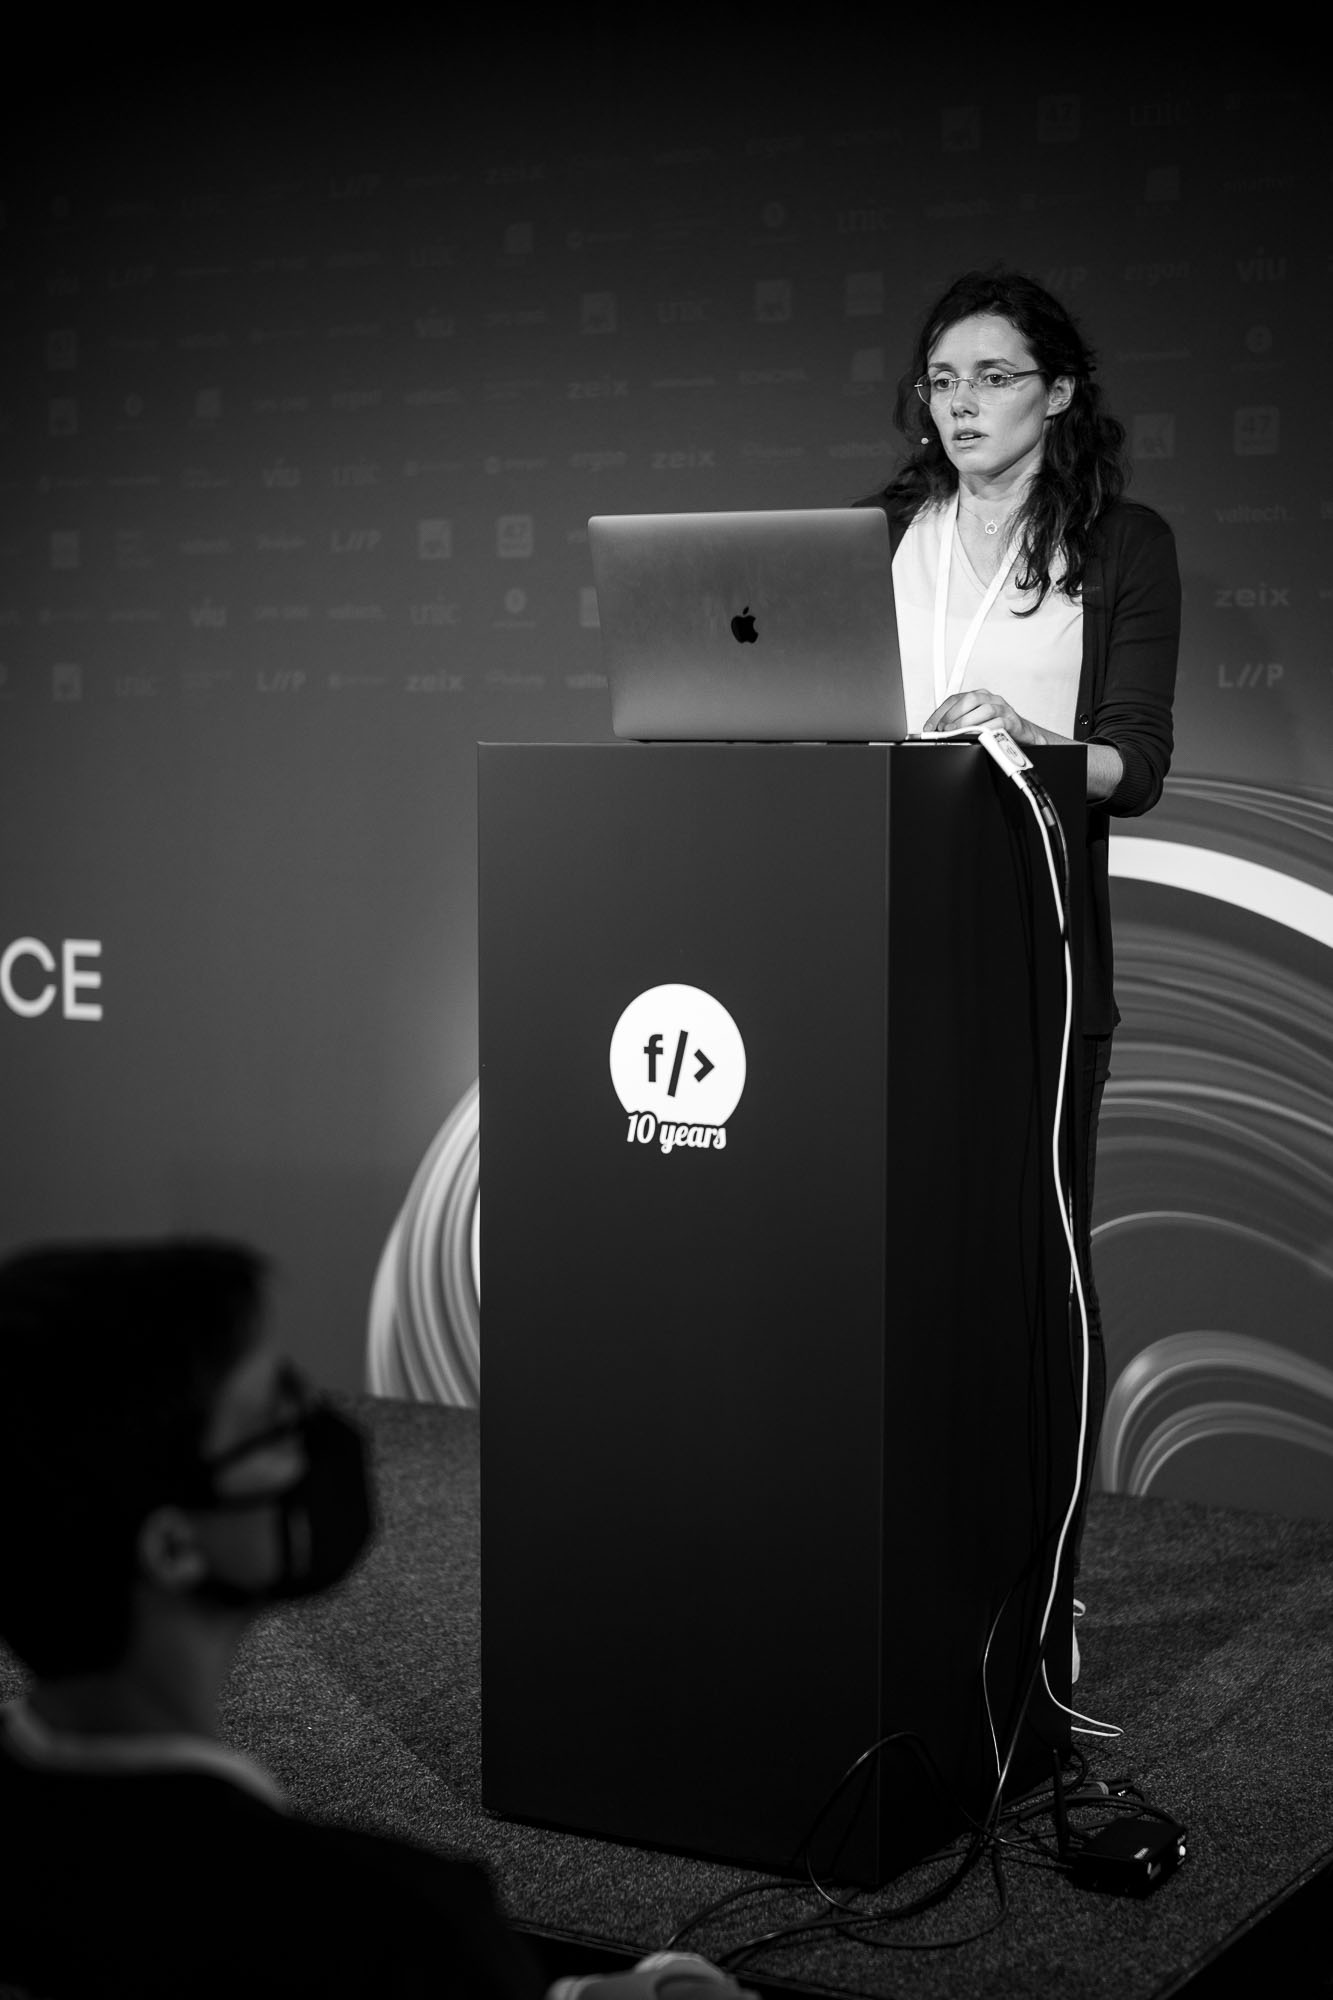 Raluca Nicola on stage at Front Conference 2021